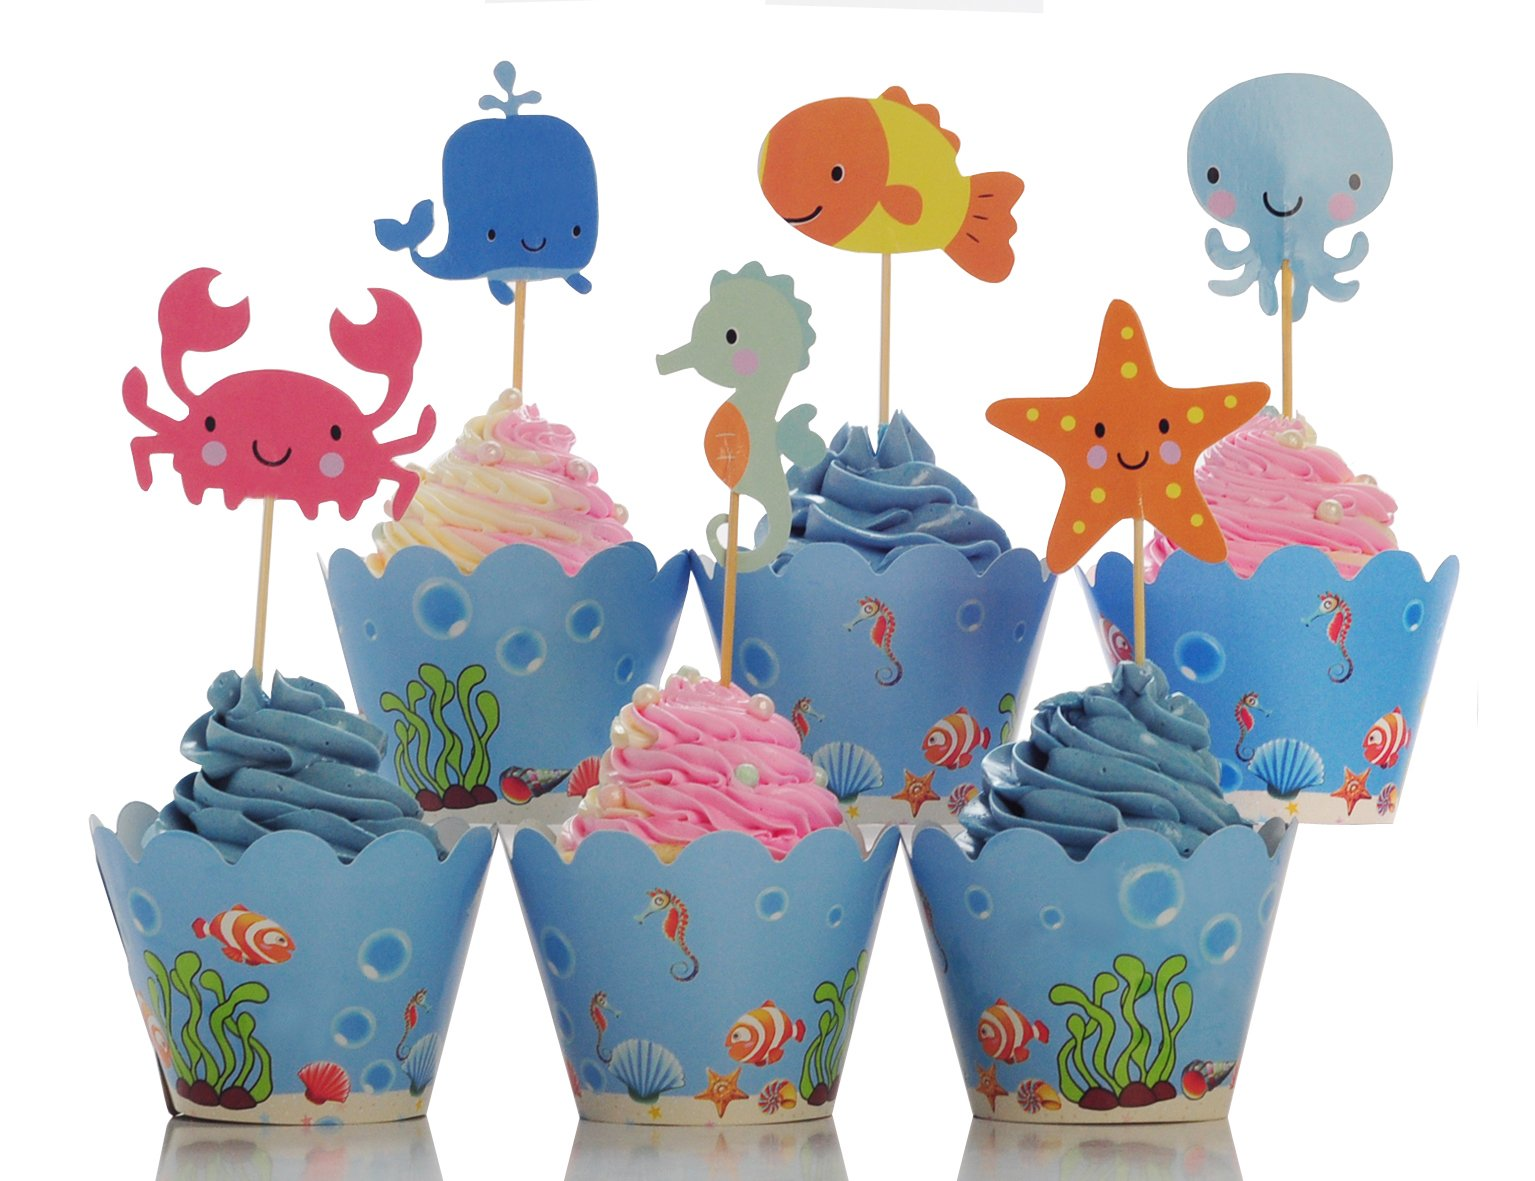 BeBeFun Adjustable Cupcake Wrappers and Toppers Under the Sea and Marin Animals Theme for Kids Birthday Party Supplies and Special Events Supplies 24pcs Wrappers and 24pcs Toppers in Pack. by BeBeFun (Image #1)